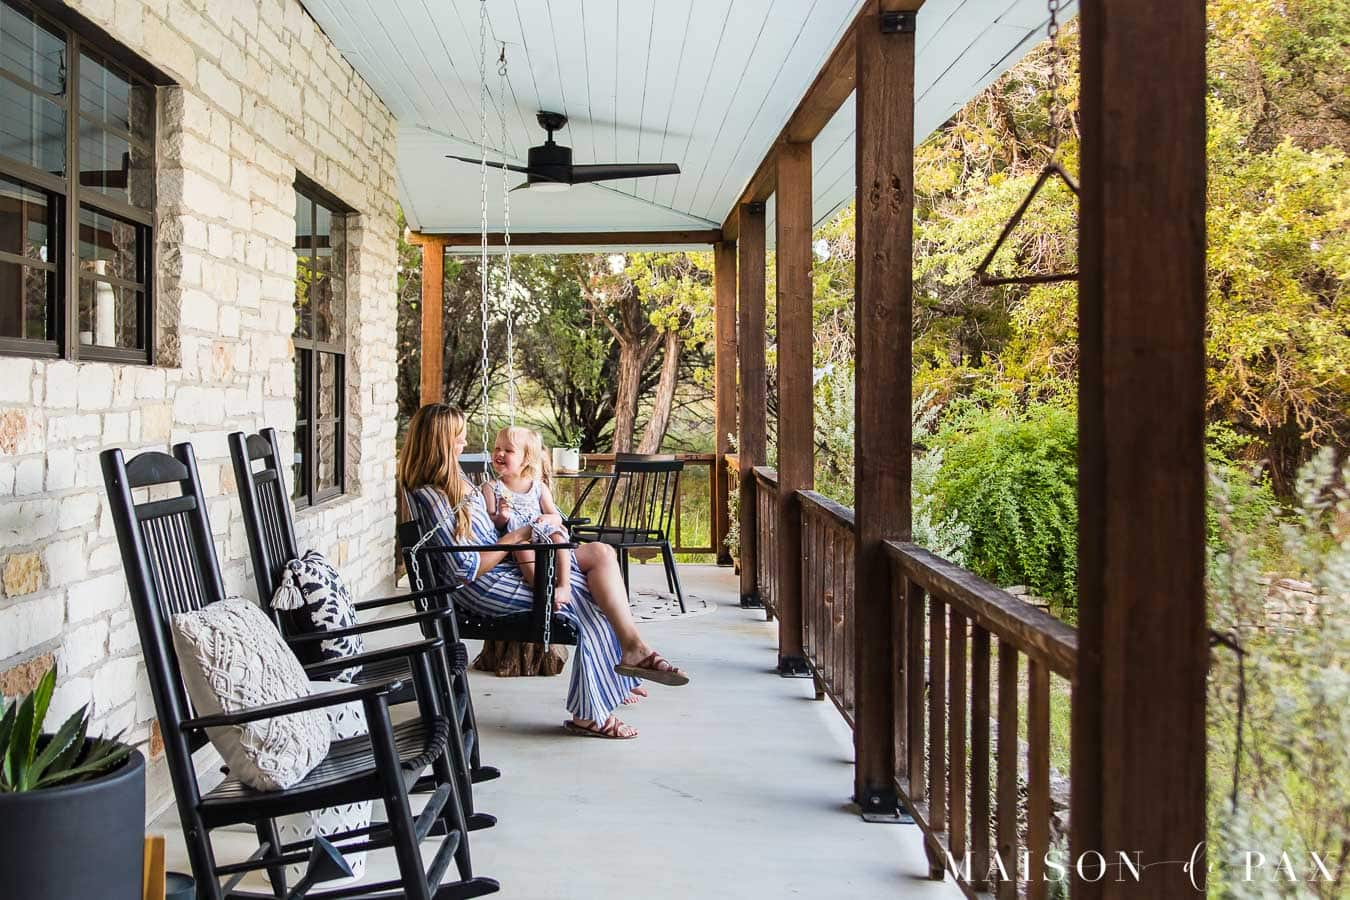 mother and daughter sitting on porch swing | Maison de Pax